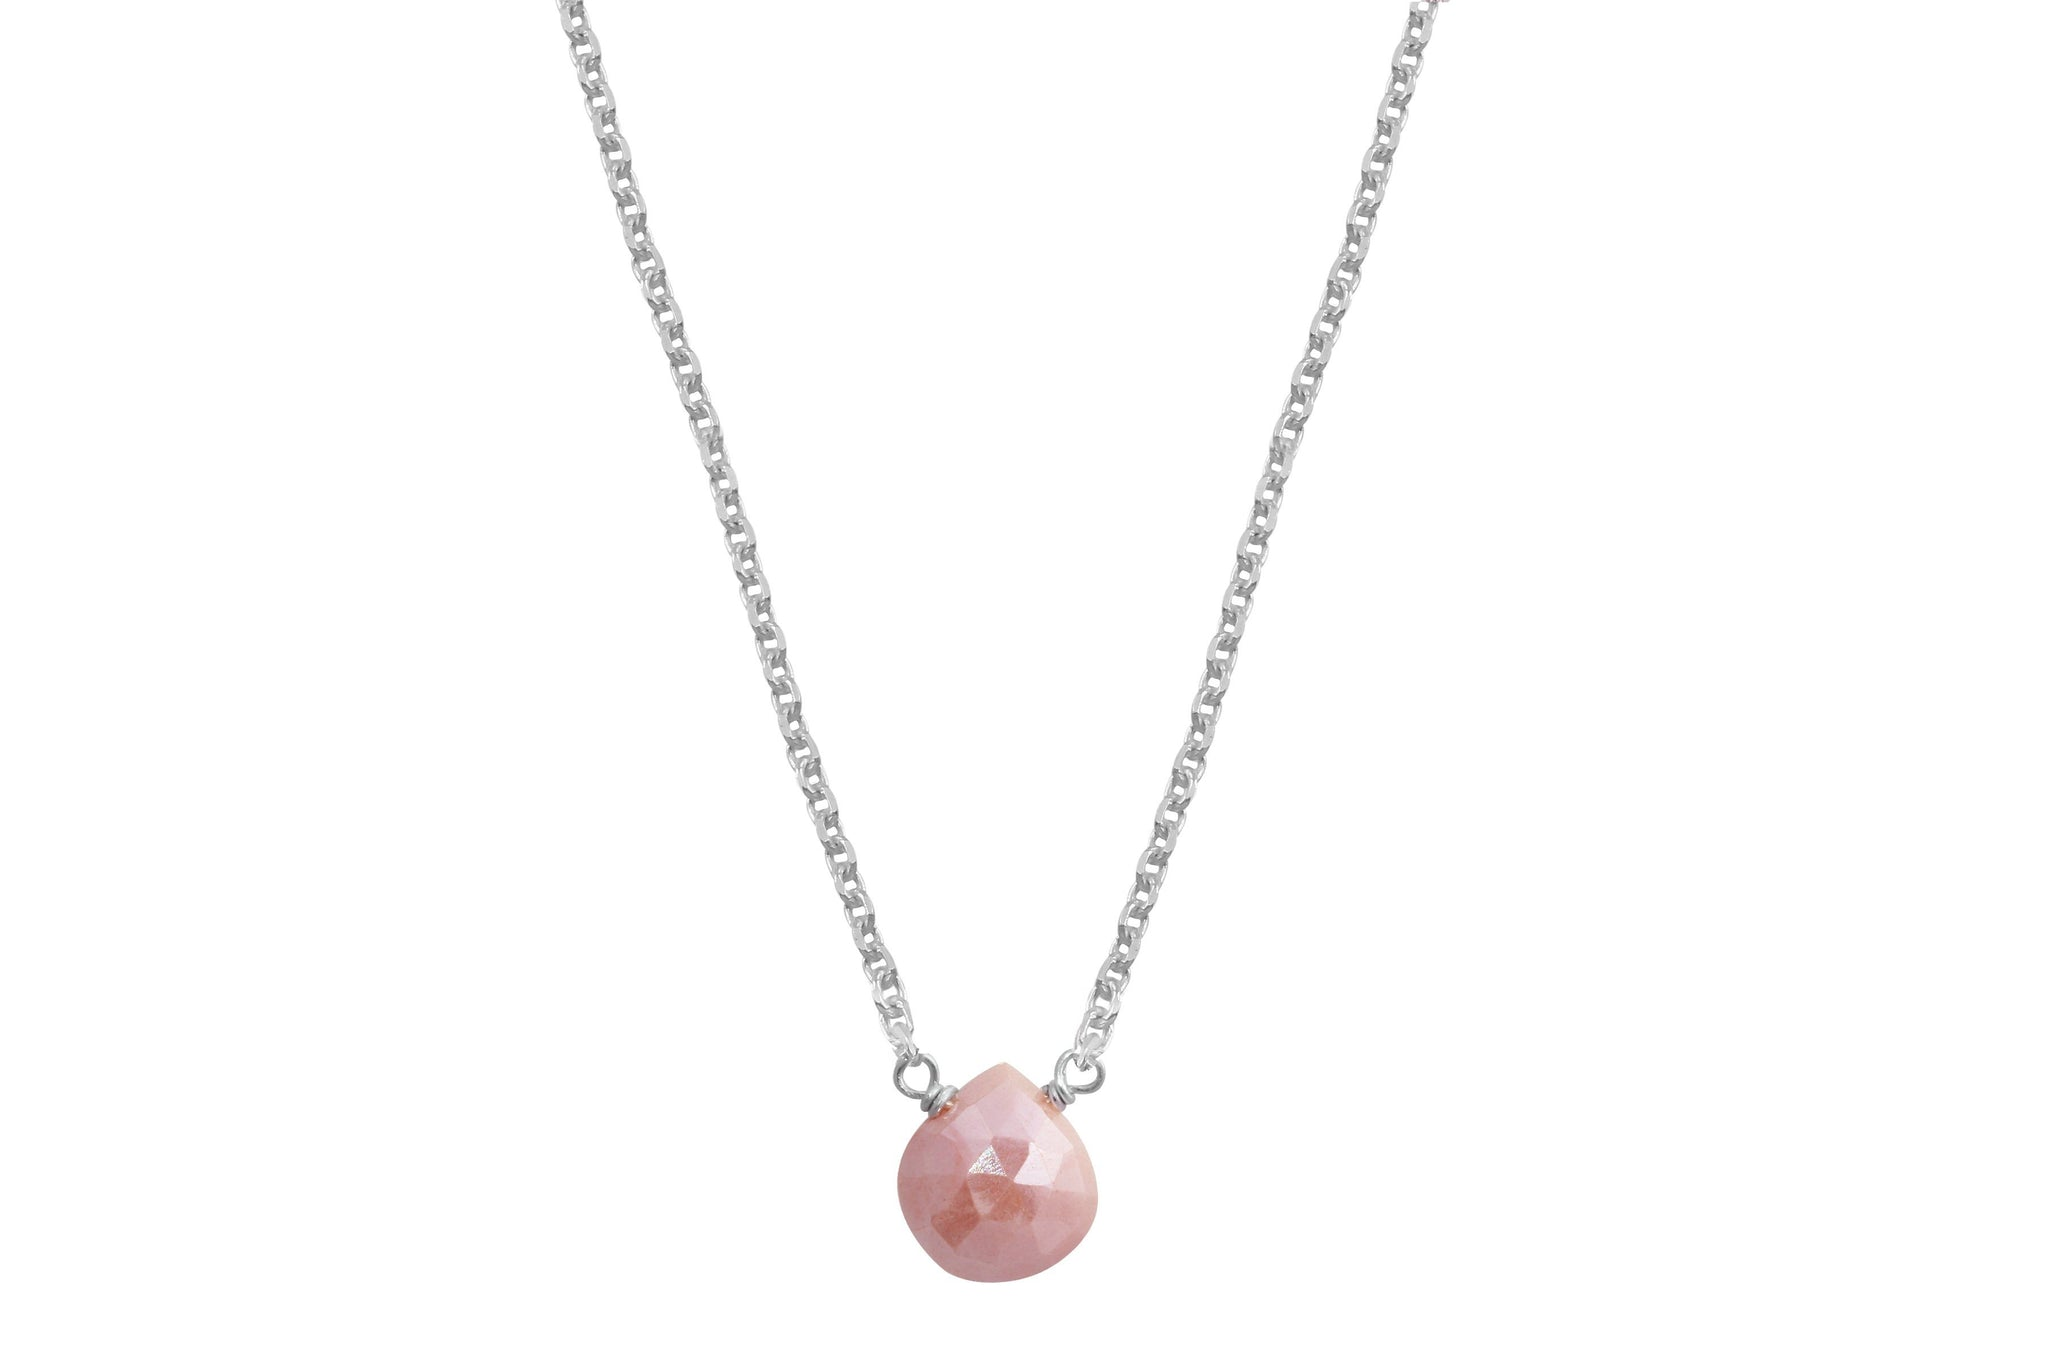 Little rock dainty pink moonstone sterling silver necklace // crystal necklace